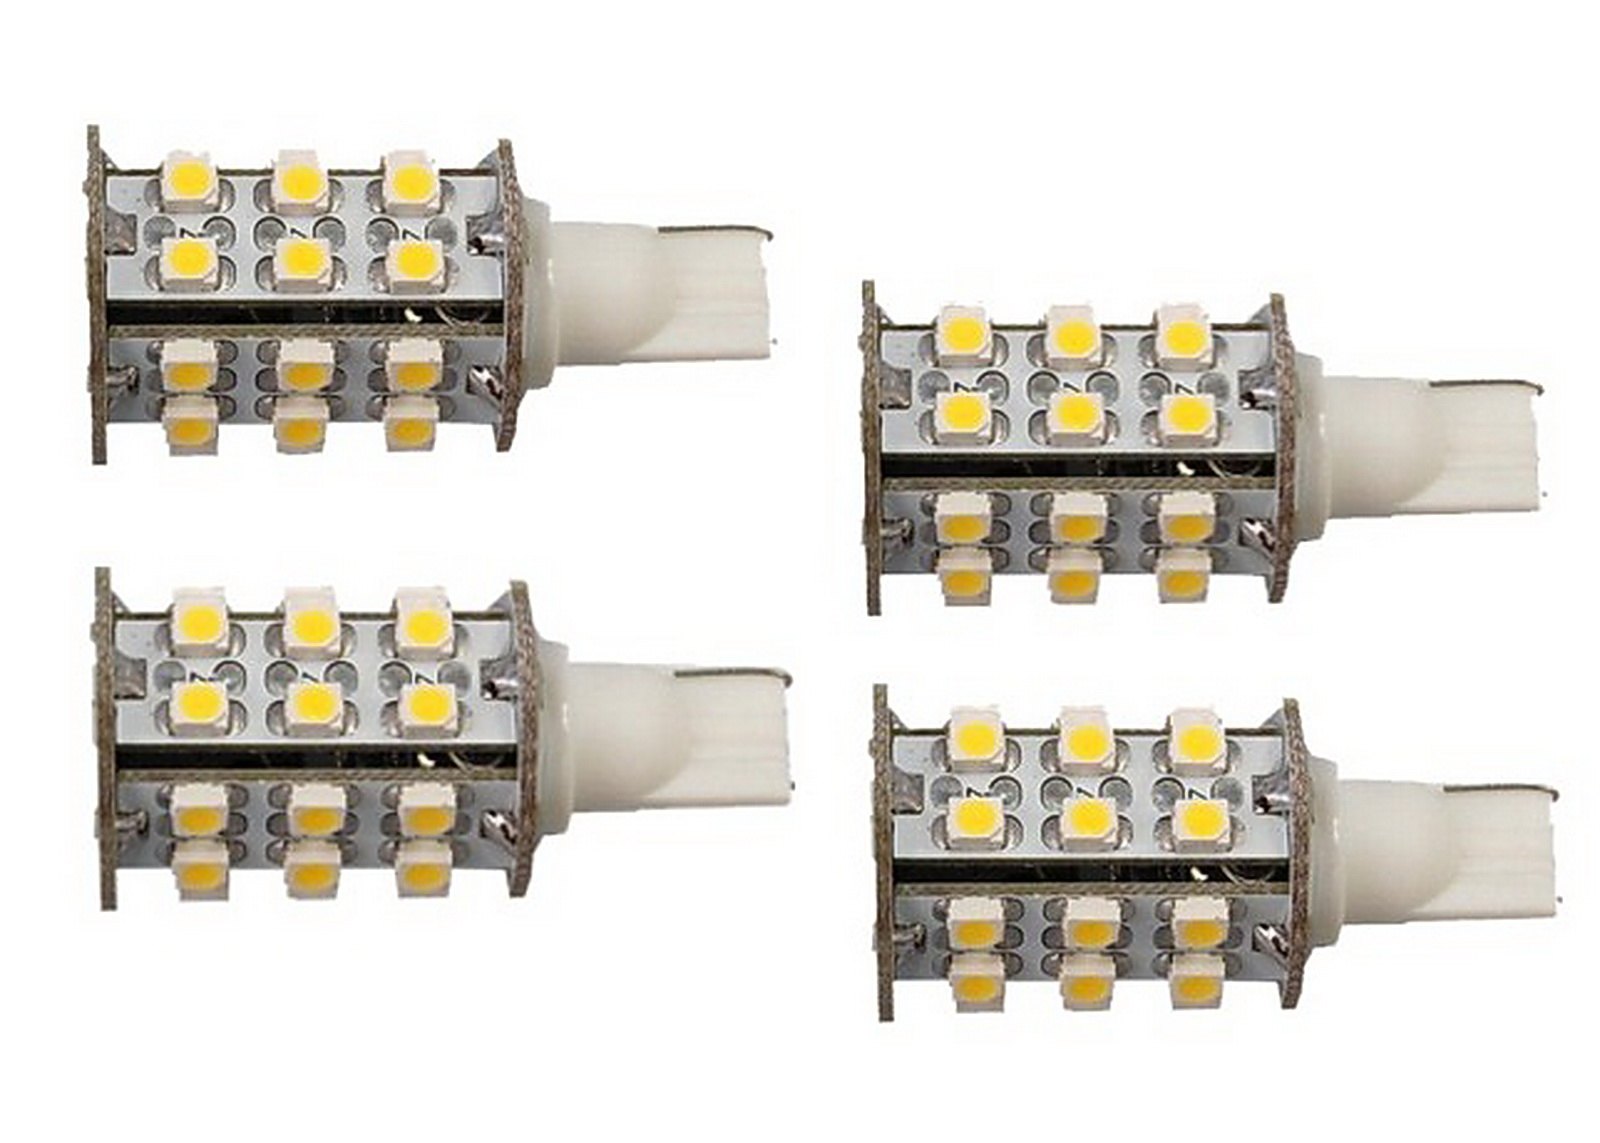 4x T10 Wedge Base 30 Leds Bulb Replacement For 194 921